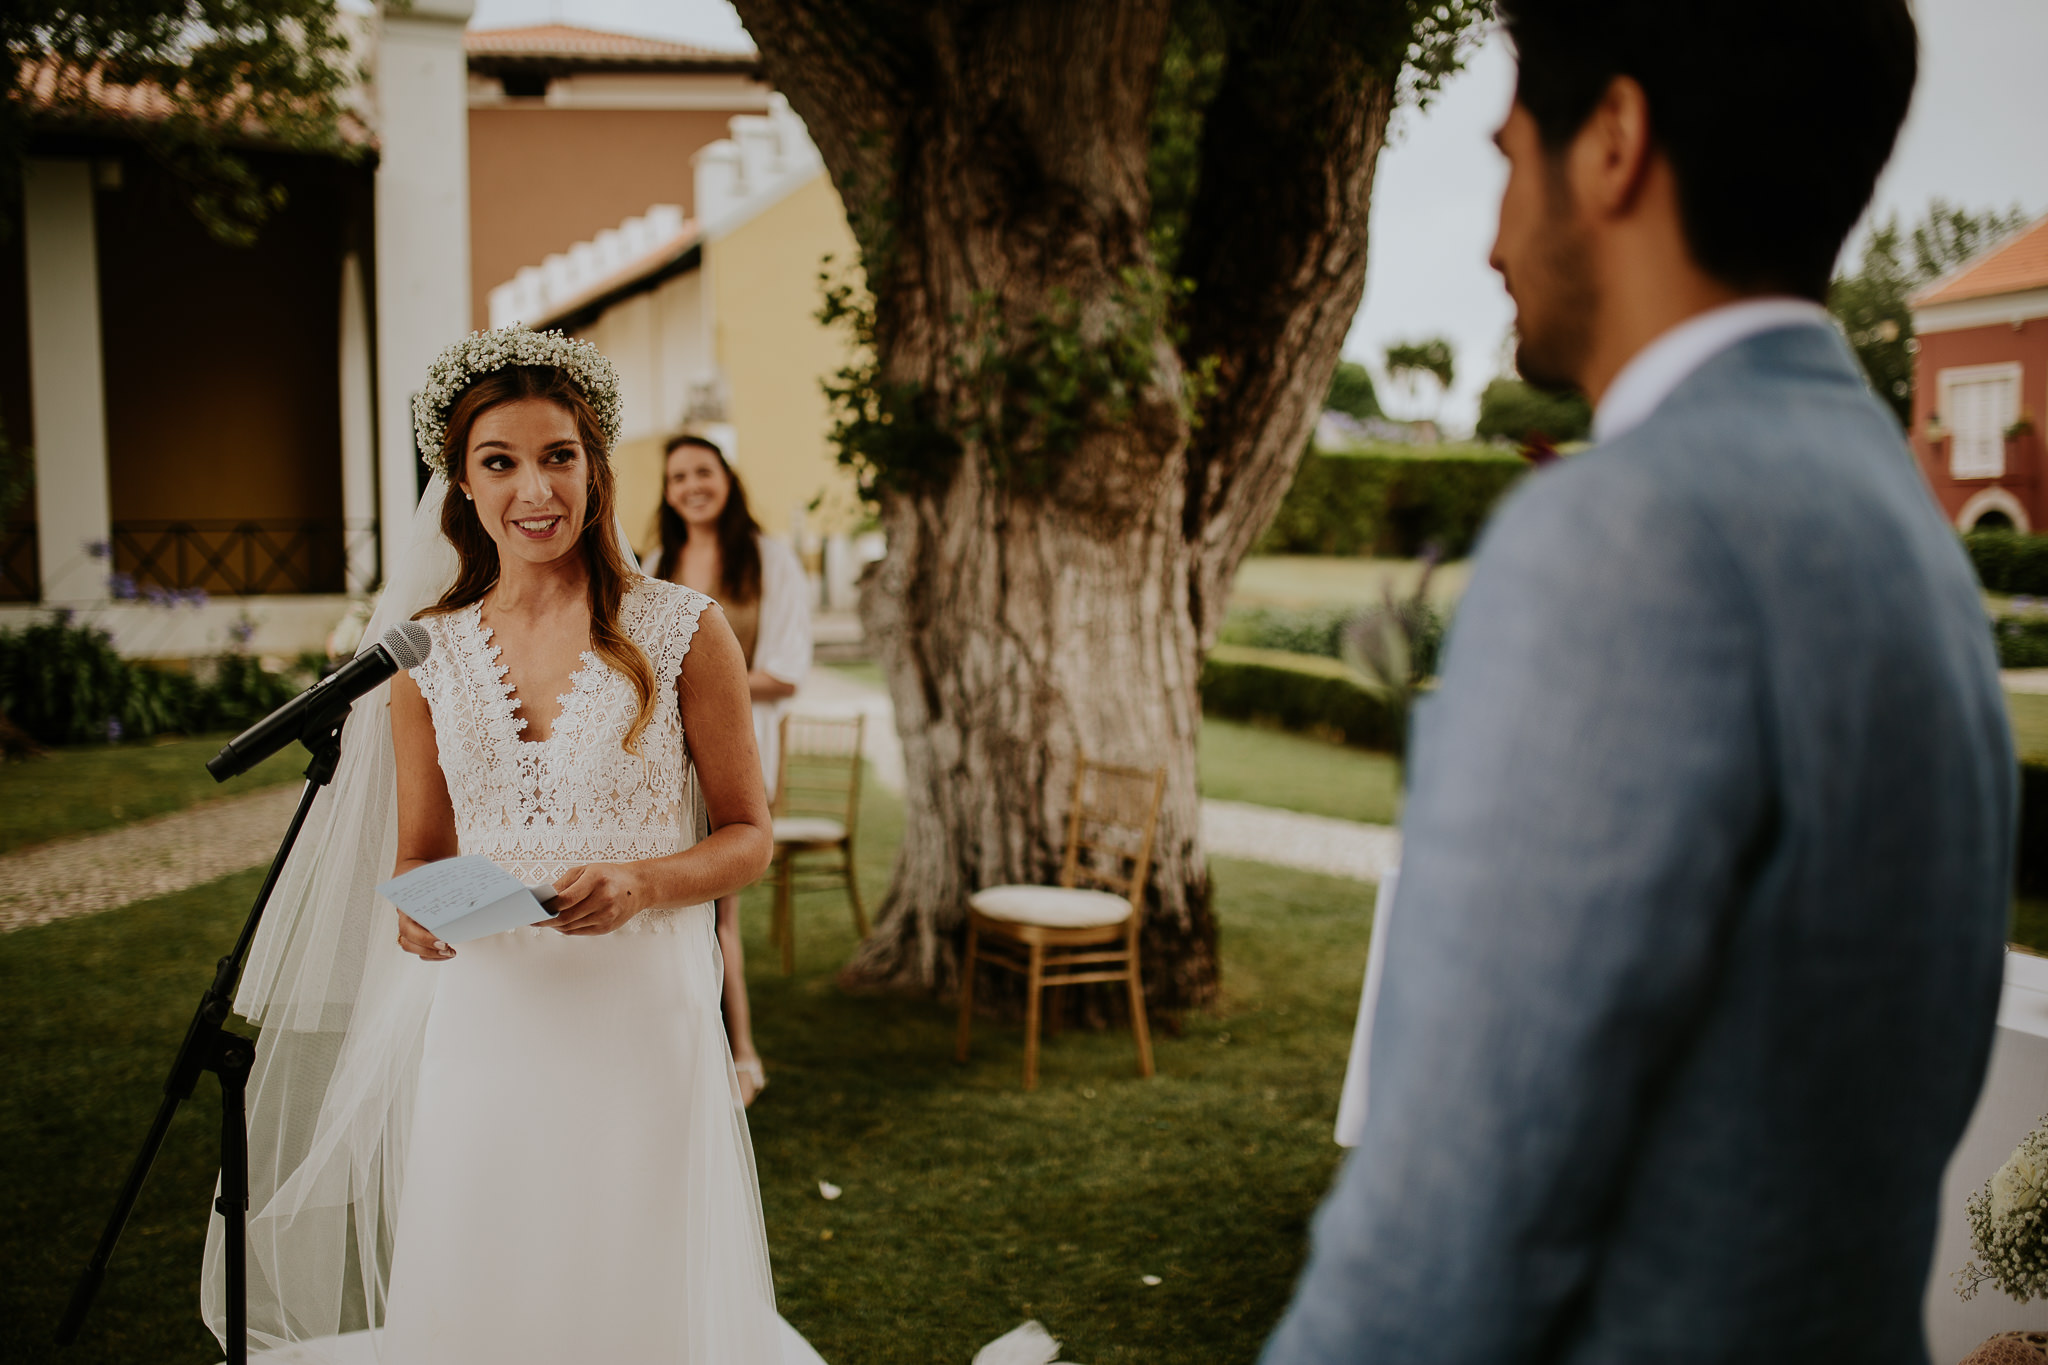 romina_thomas_destination_wedding_photography_fotografia_de_casamento_lisbon_sintra_penha_longa_resort-50